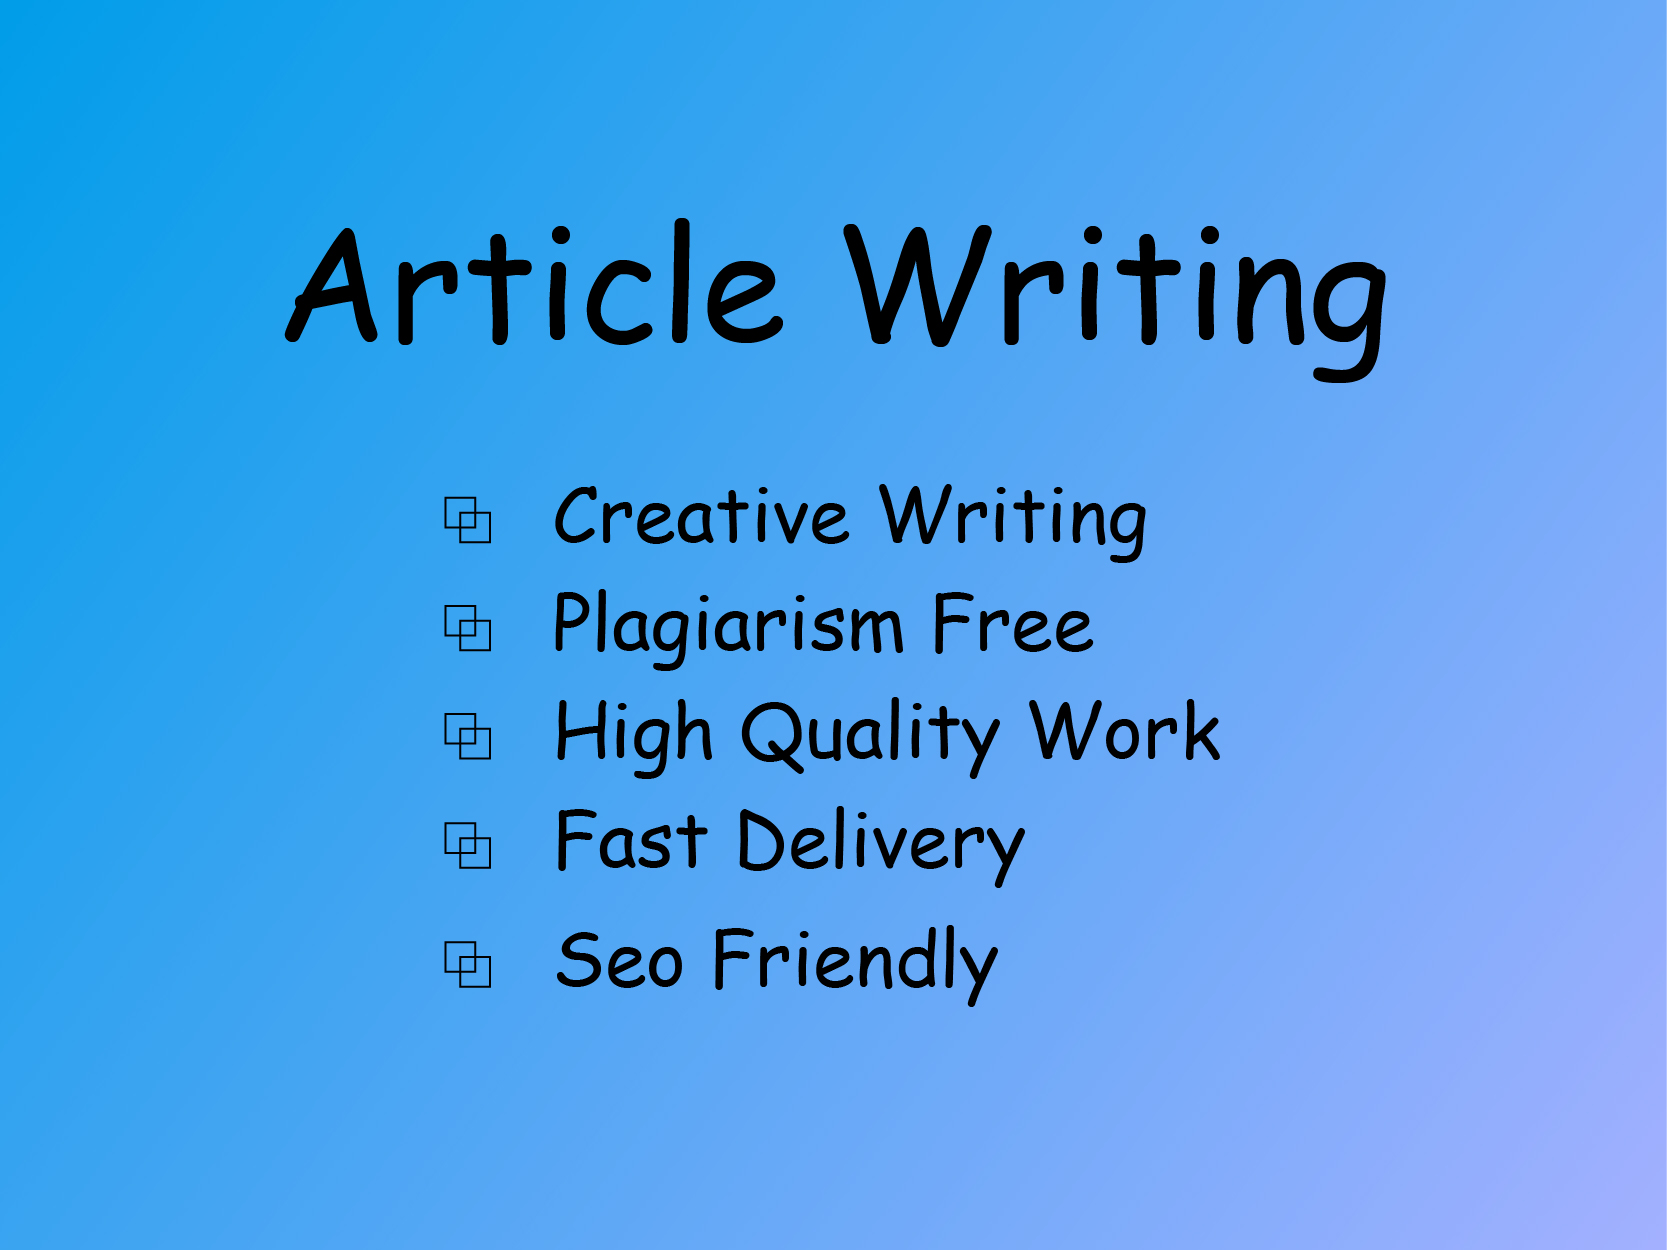 1500+ Words Smart and creative Article Writing